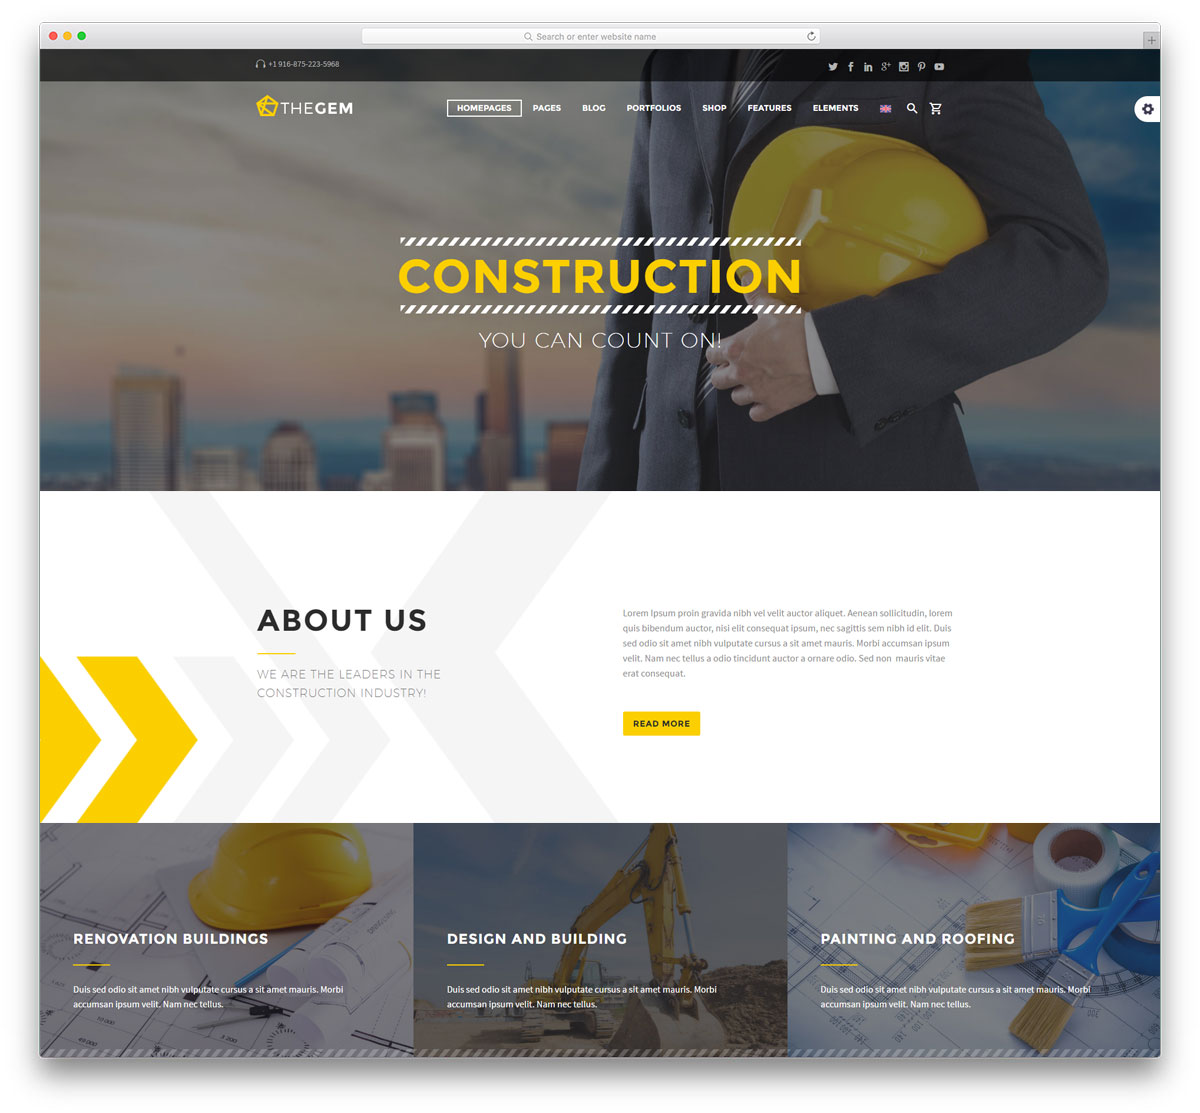 thegem-construction-website-template